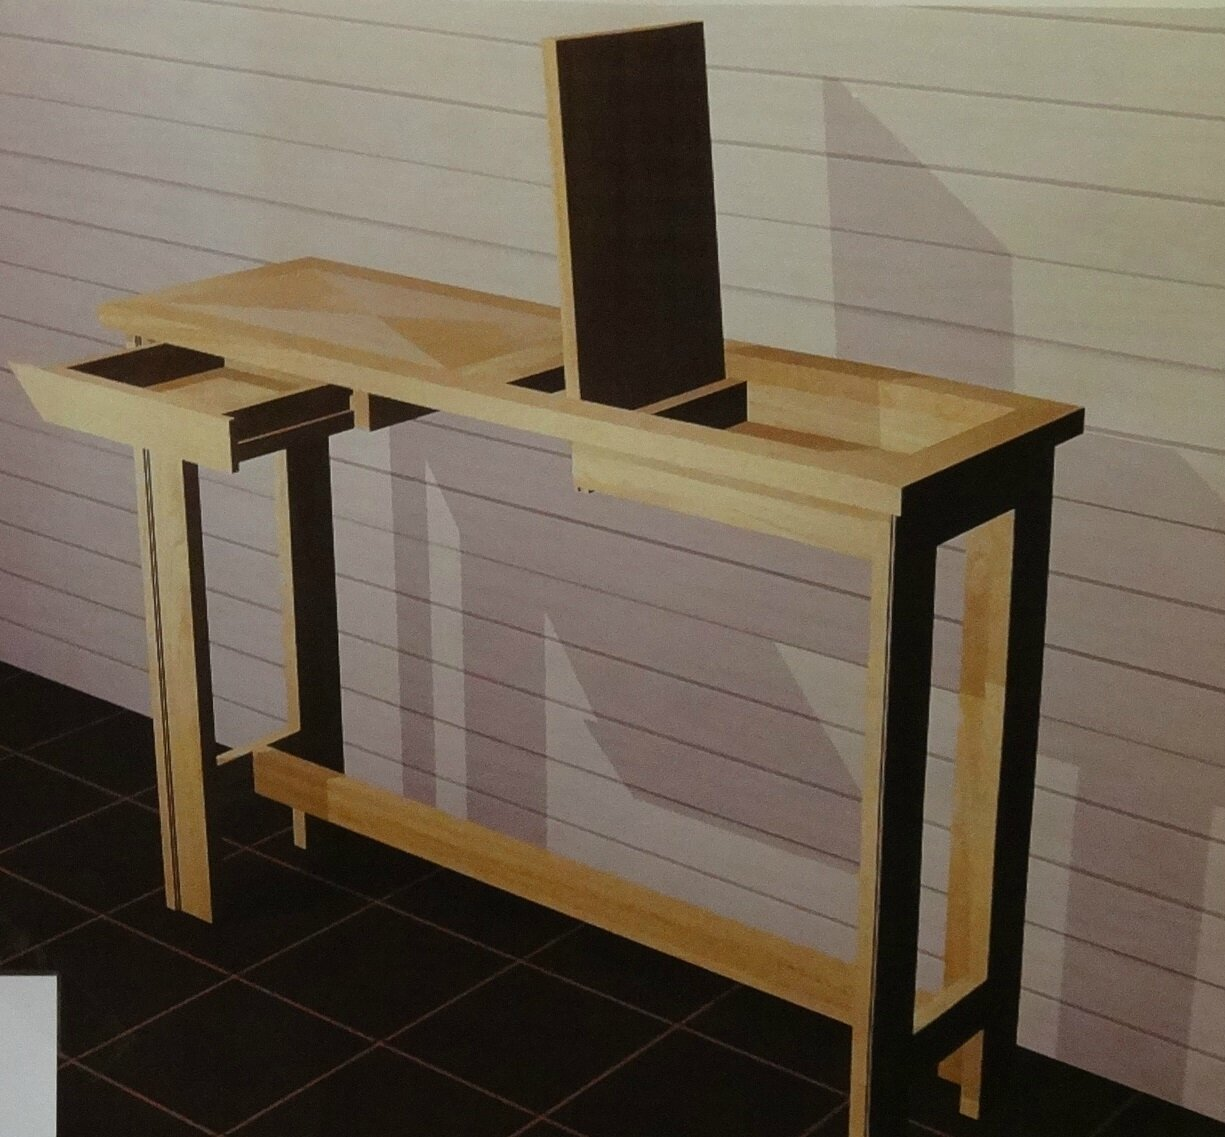 olympiades des metiers strasbourg 2015 toit toi mon troyes. Black Bedroom Furniture Sets. Home Design Ideas